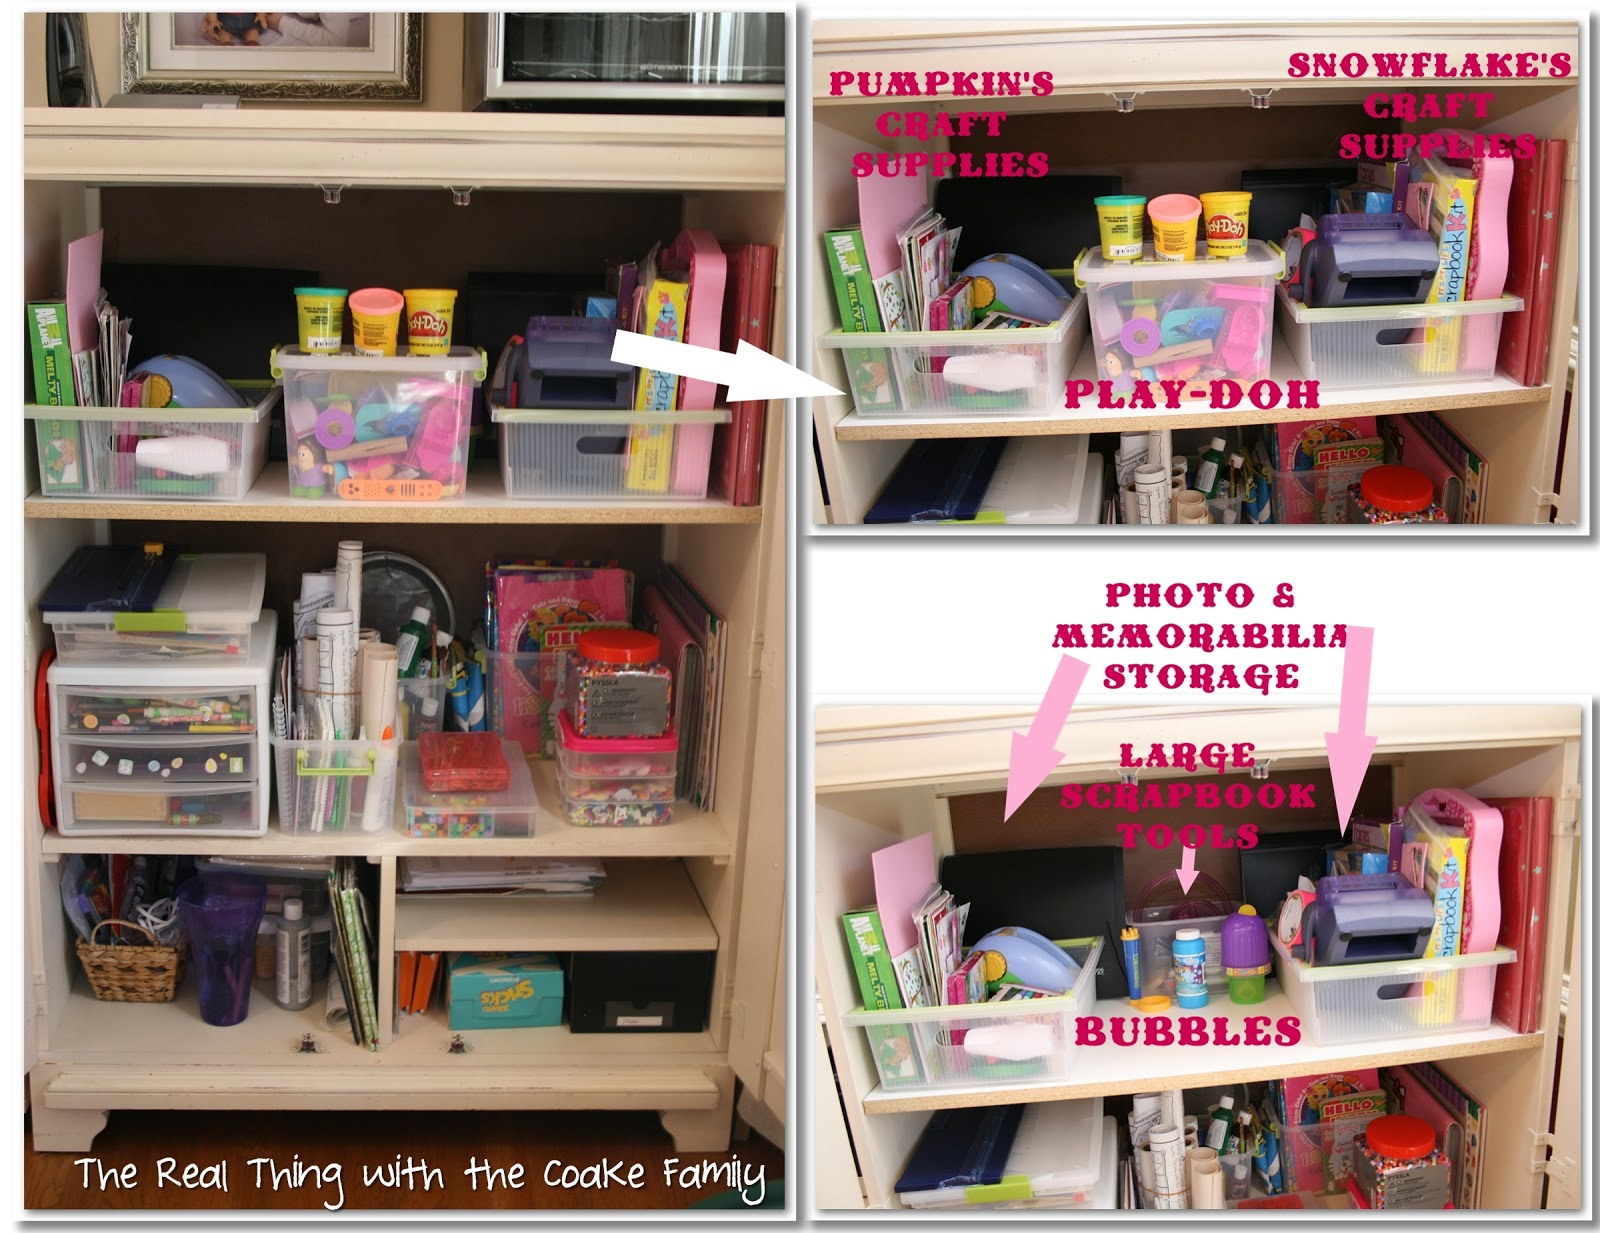 Home office home office organization ideas room Office Space The Real Thing With The Coake Family Organizing Ideas Crafts Office The Real Thing With The Coake Family